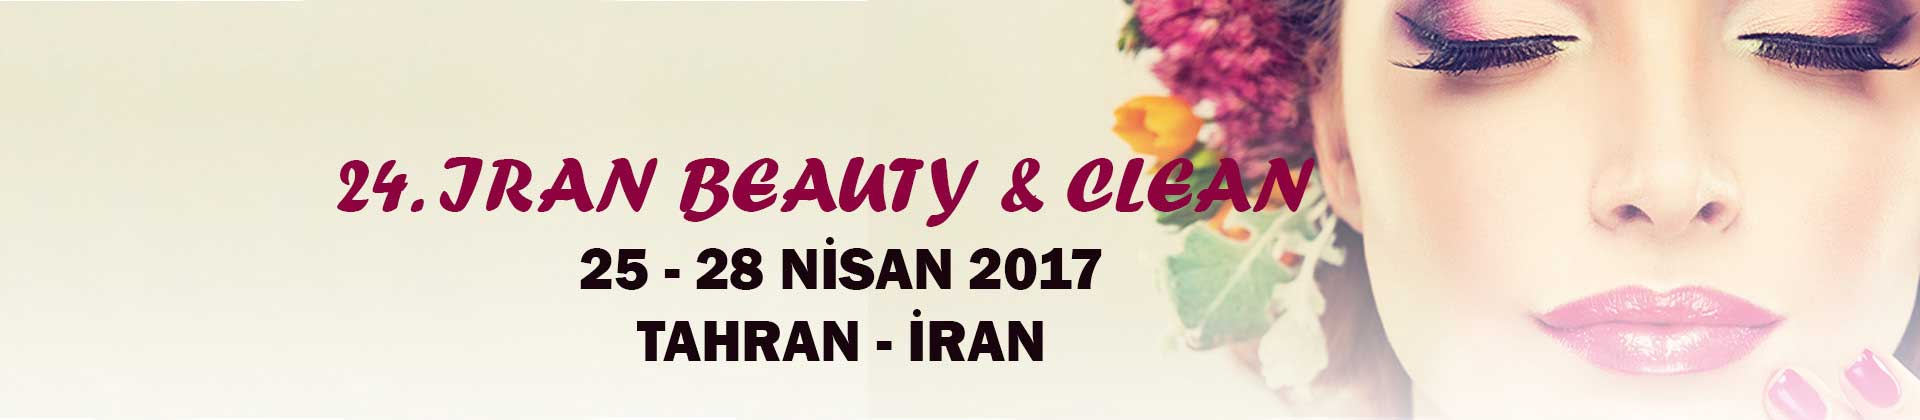 iran-beauty-2017